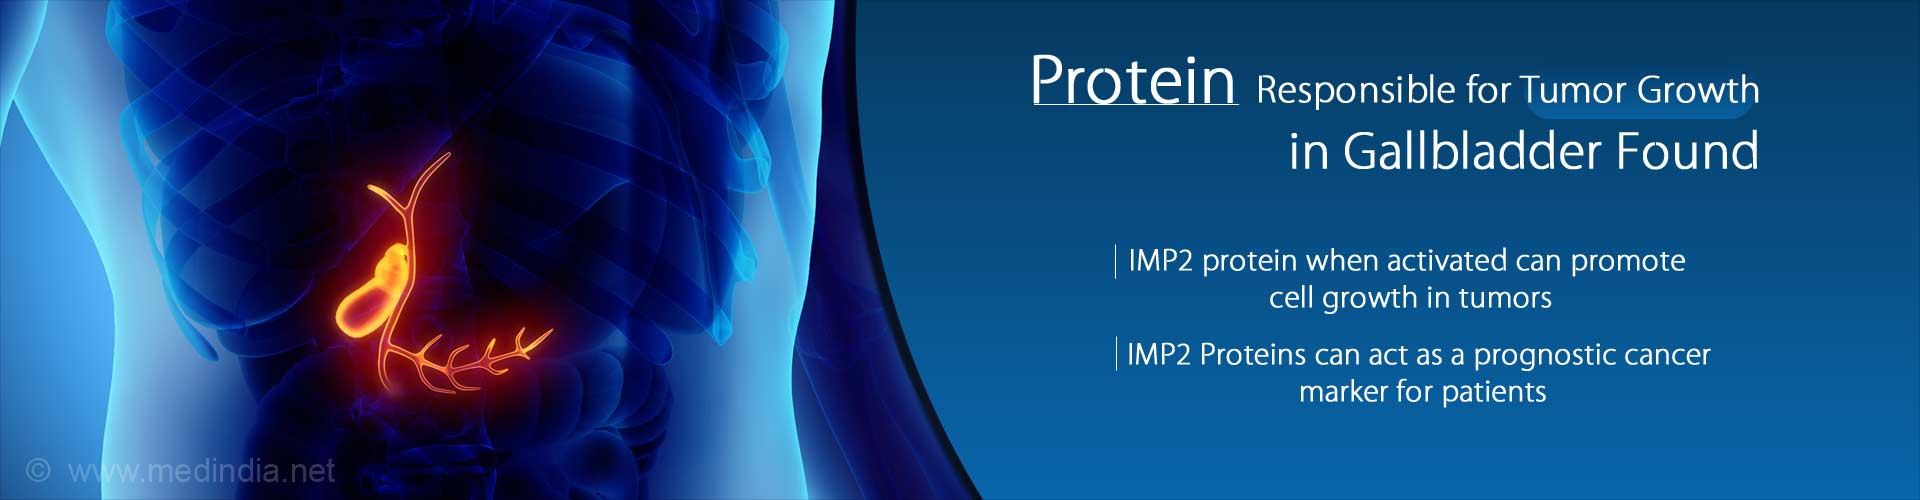 IMP2 Protein Might be Responsible for Gallbladder Tumor Growth